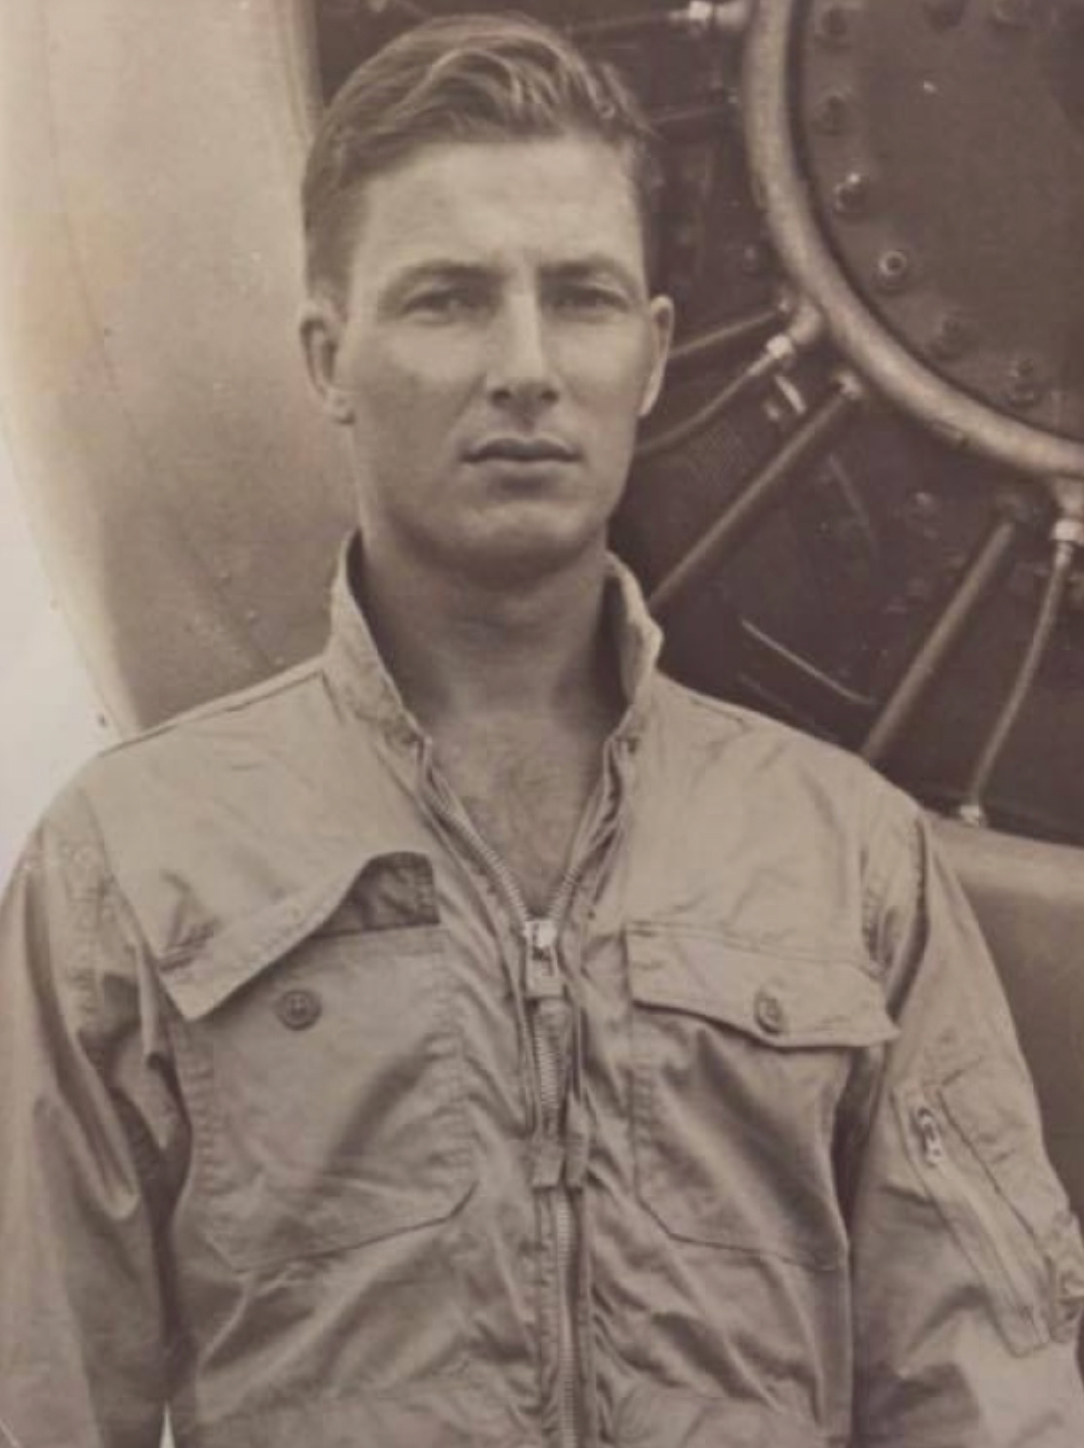 Lieutenant Barry Troy, a Royal Canadian Navy Banshee fighter pilot, was 29 when he disappeared off the coast of Florida during a training exercise on February 25, 1958. PHOTO: Submitted